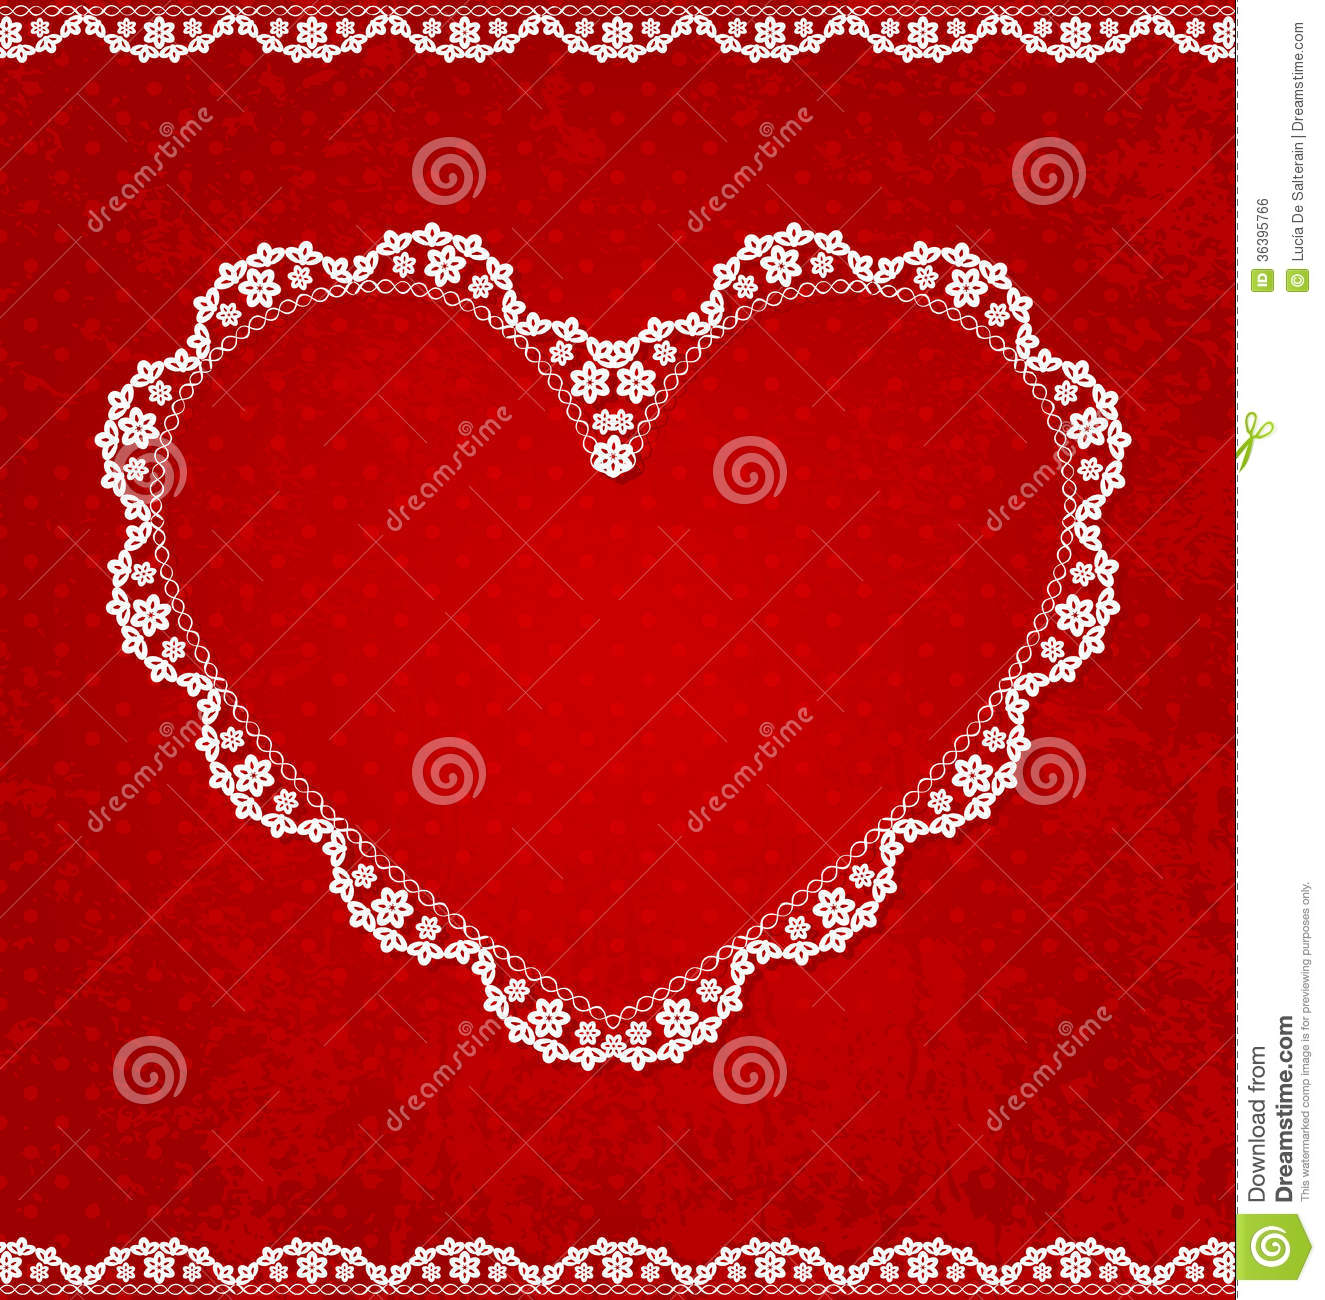 Valentines Day Vintage Lace Card With Heart And Place For Text – Valentines Day Heart Card